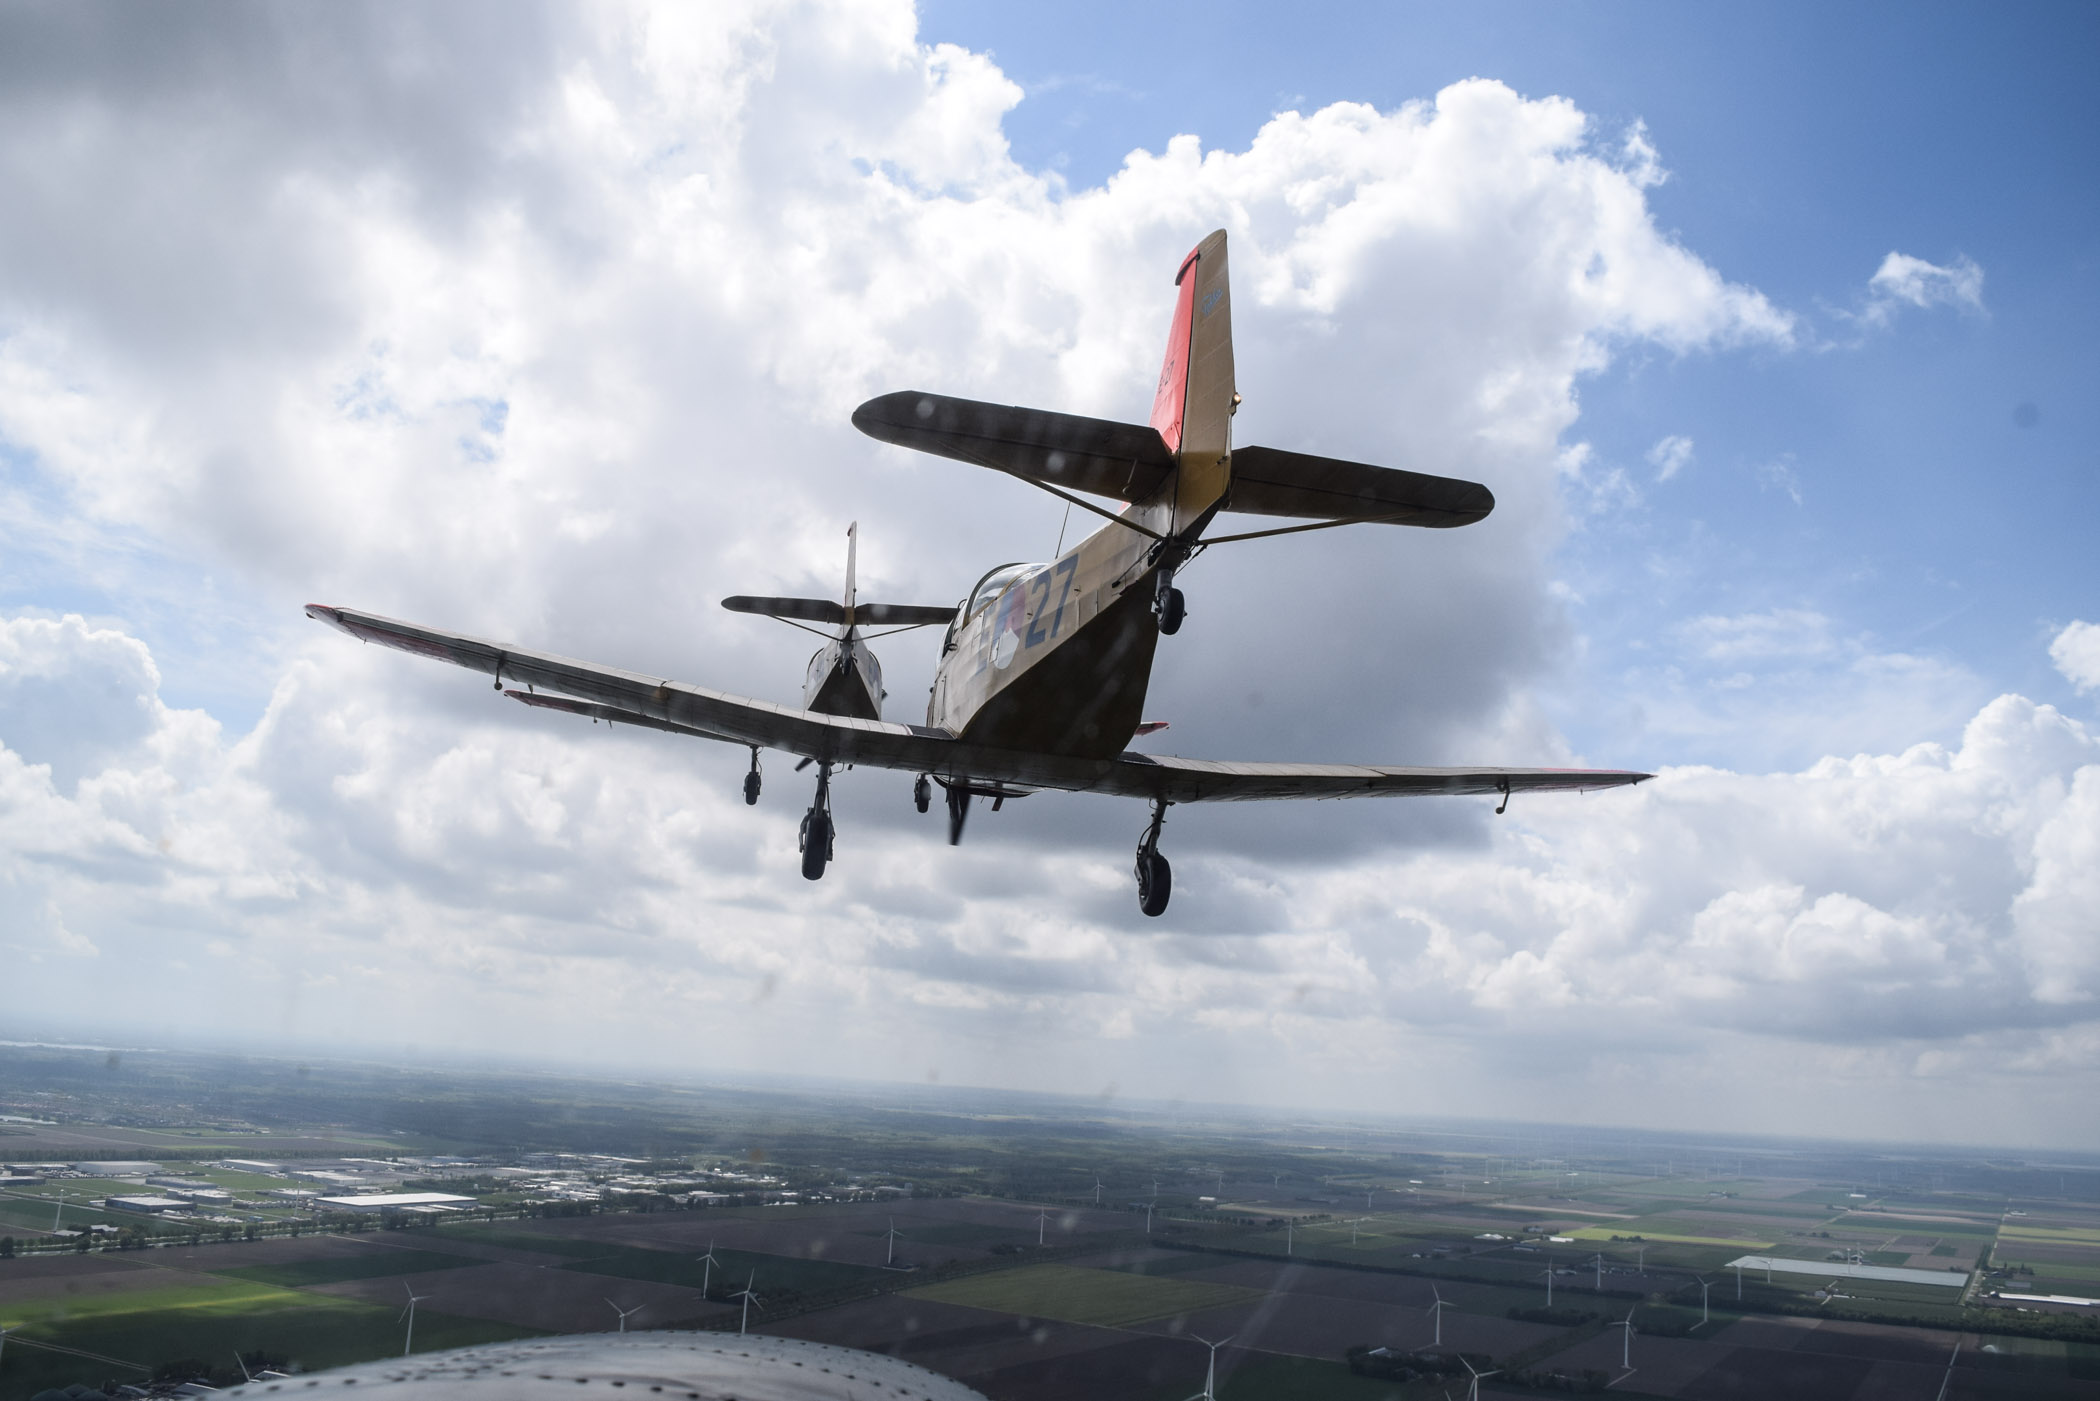 Up in the air with a Van der Gang Vlieger watch - 3